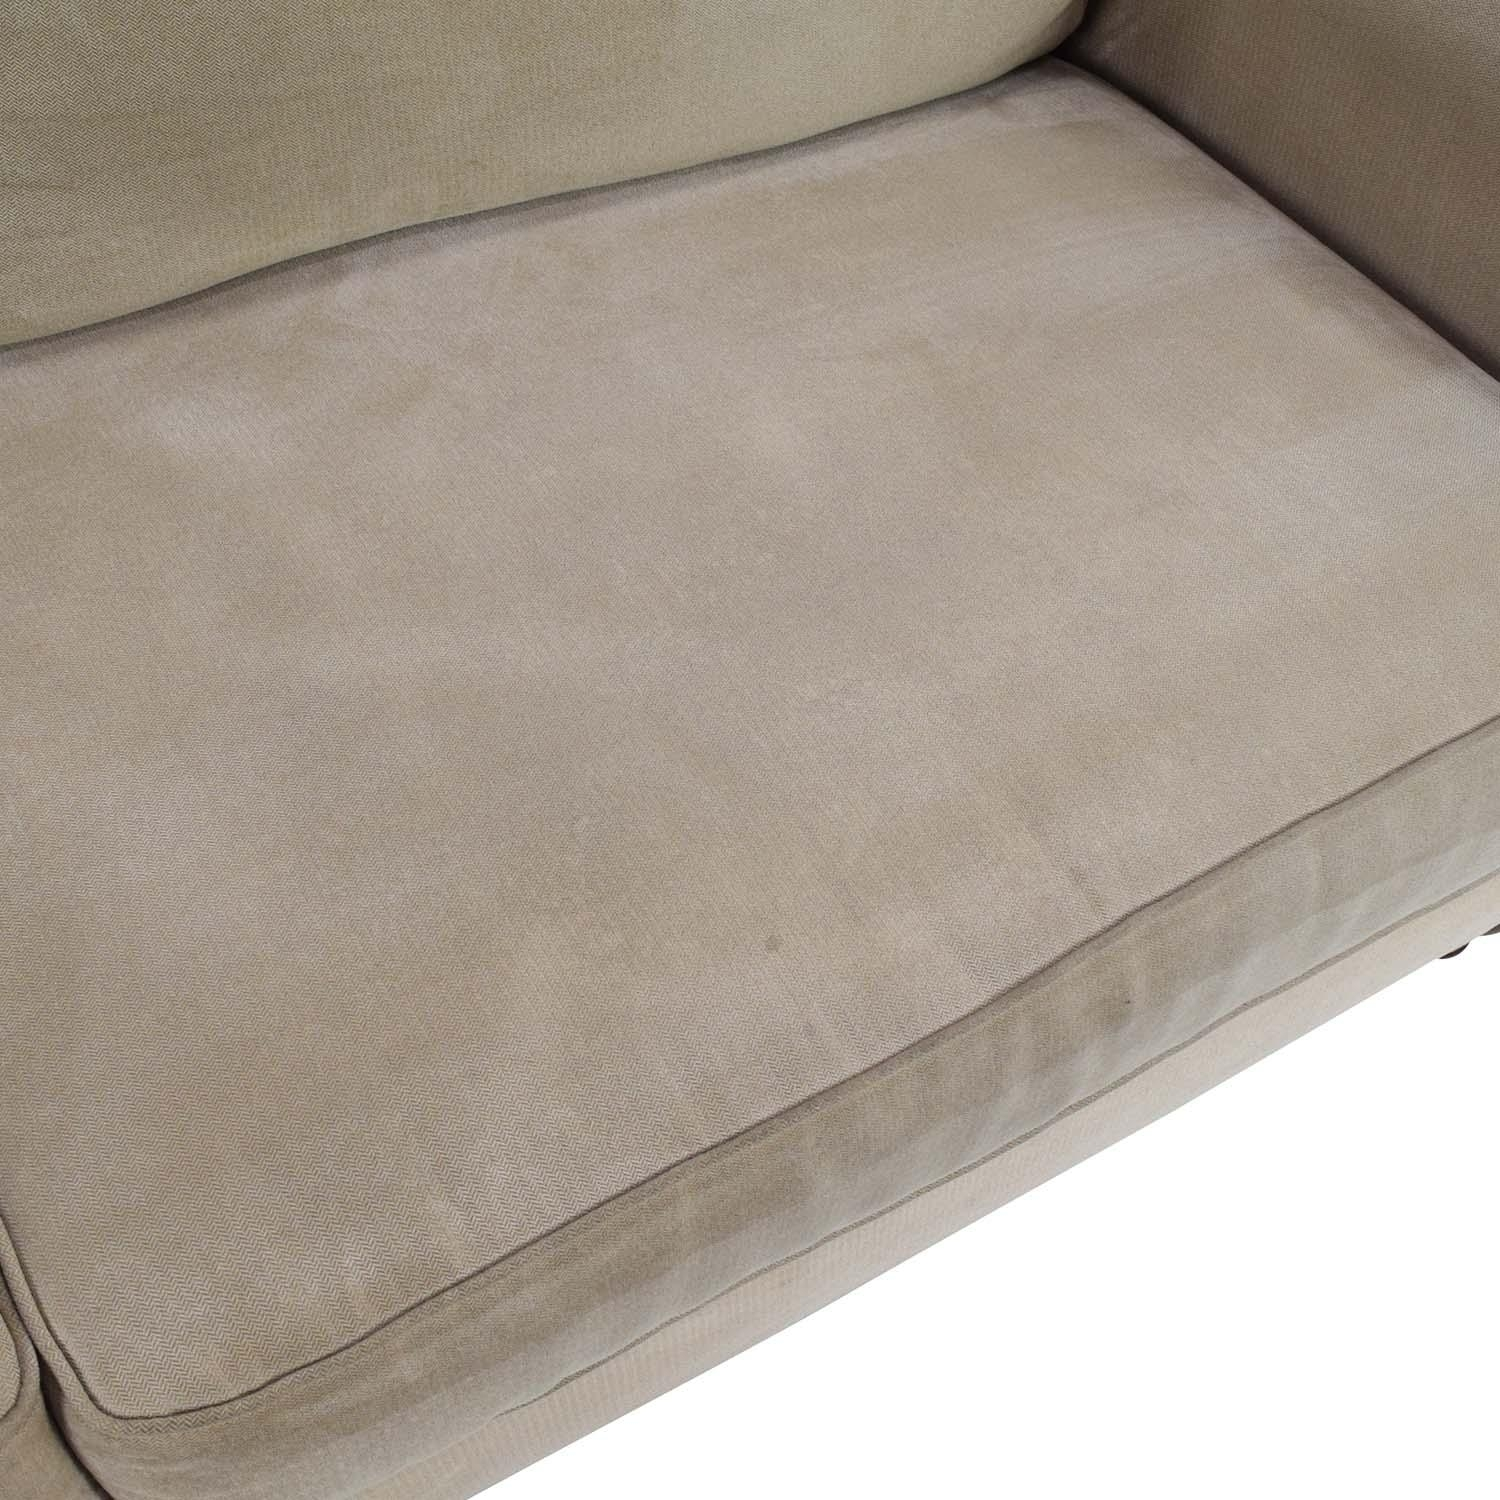 80% Off - Pier 1 Imports Pier 1 Alton Rolled Arm Sofa / Sofas pertaining to Pier 1 Sofa Beds